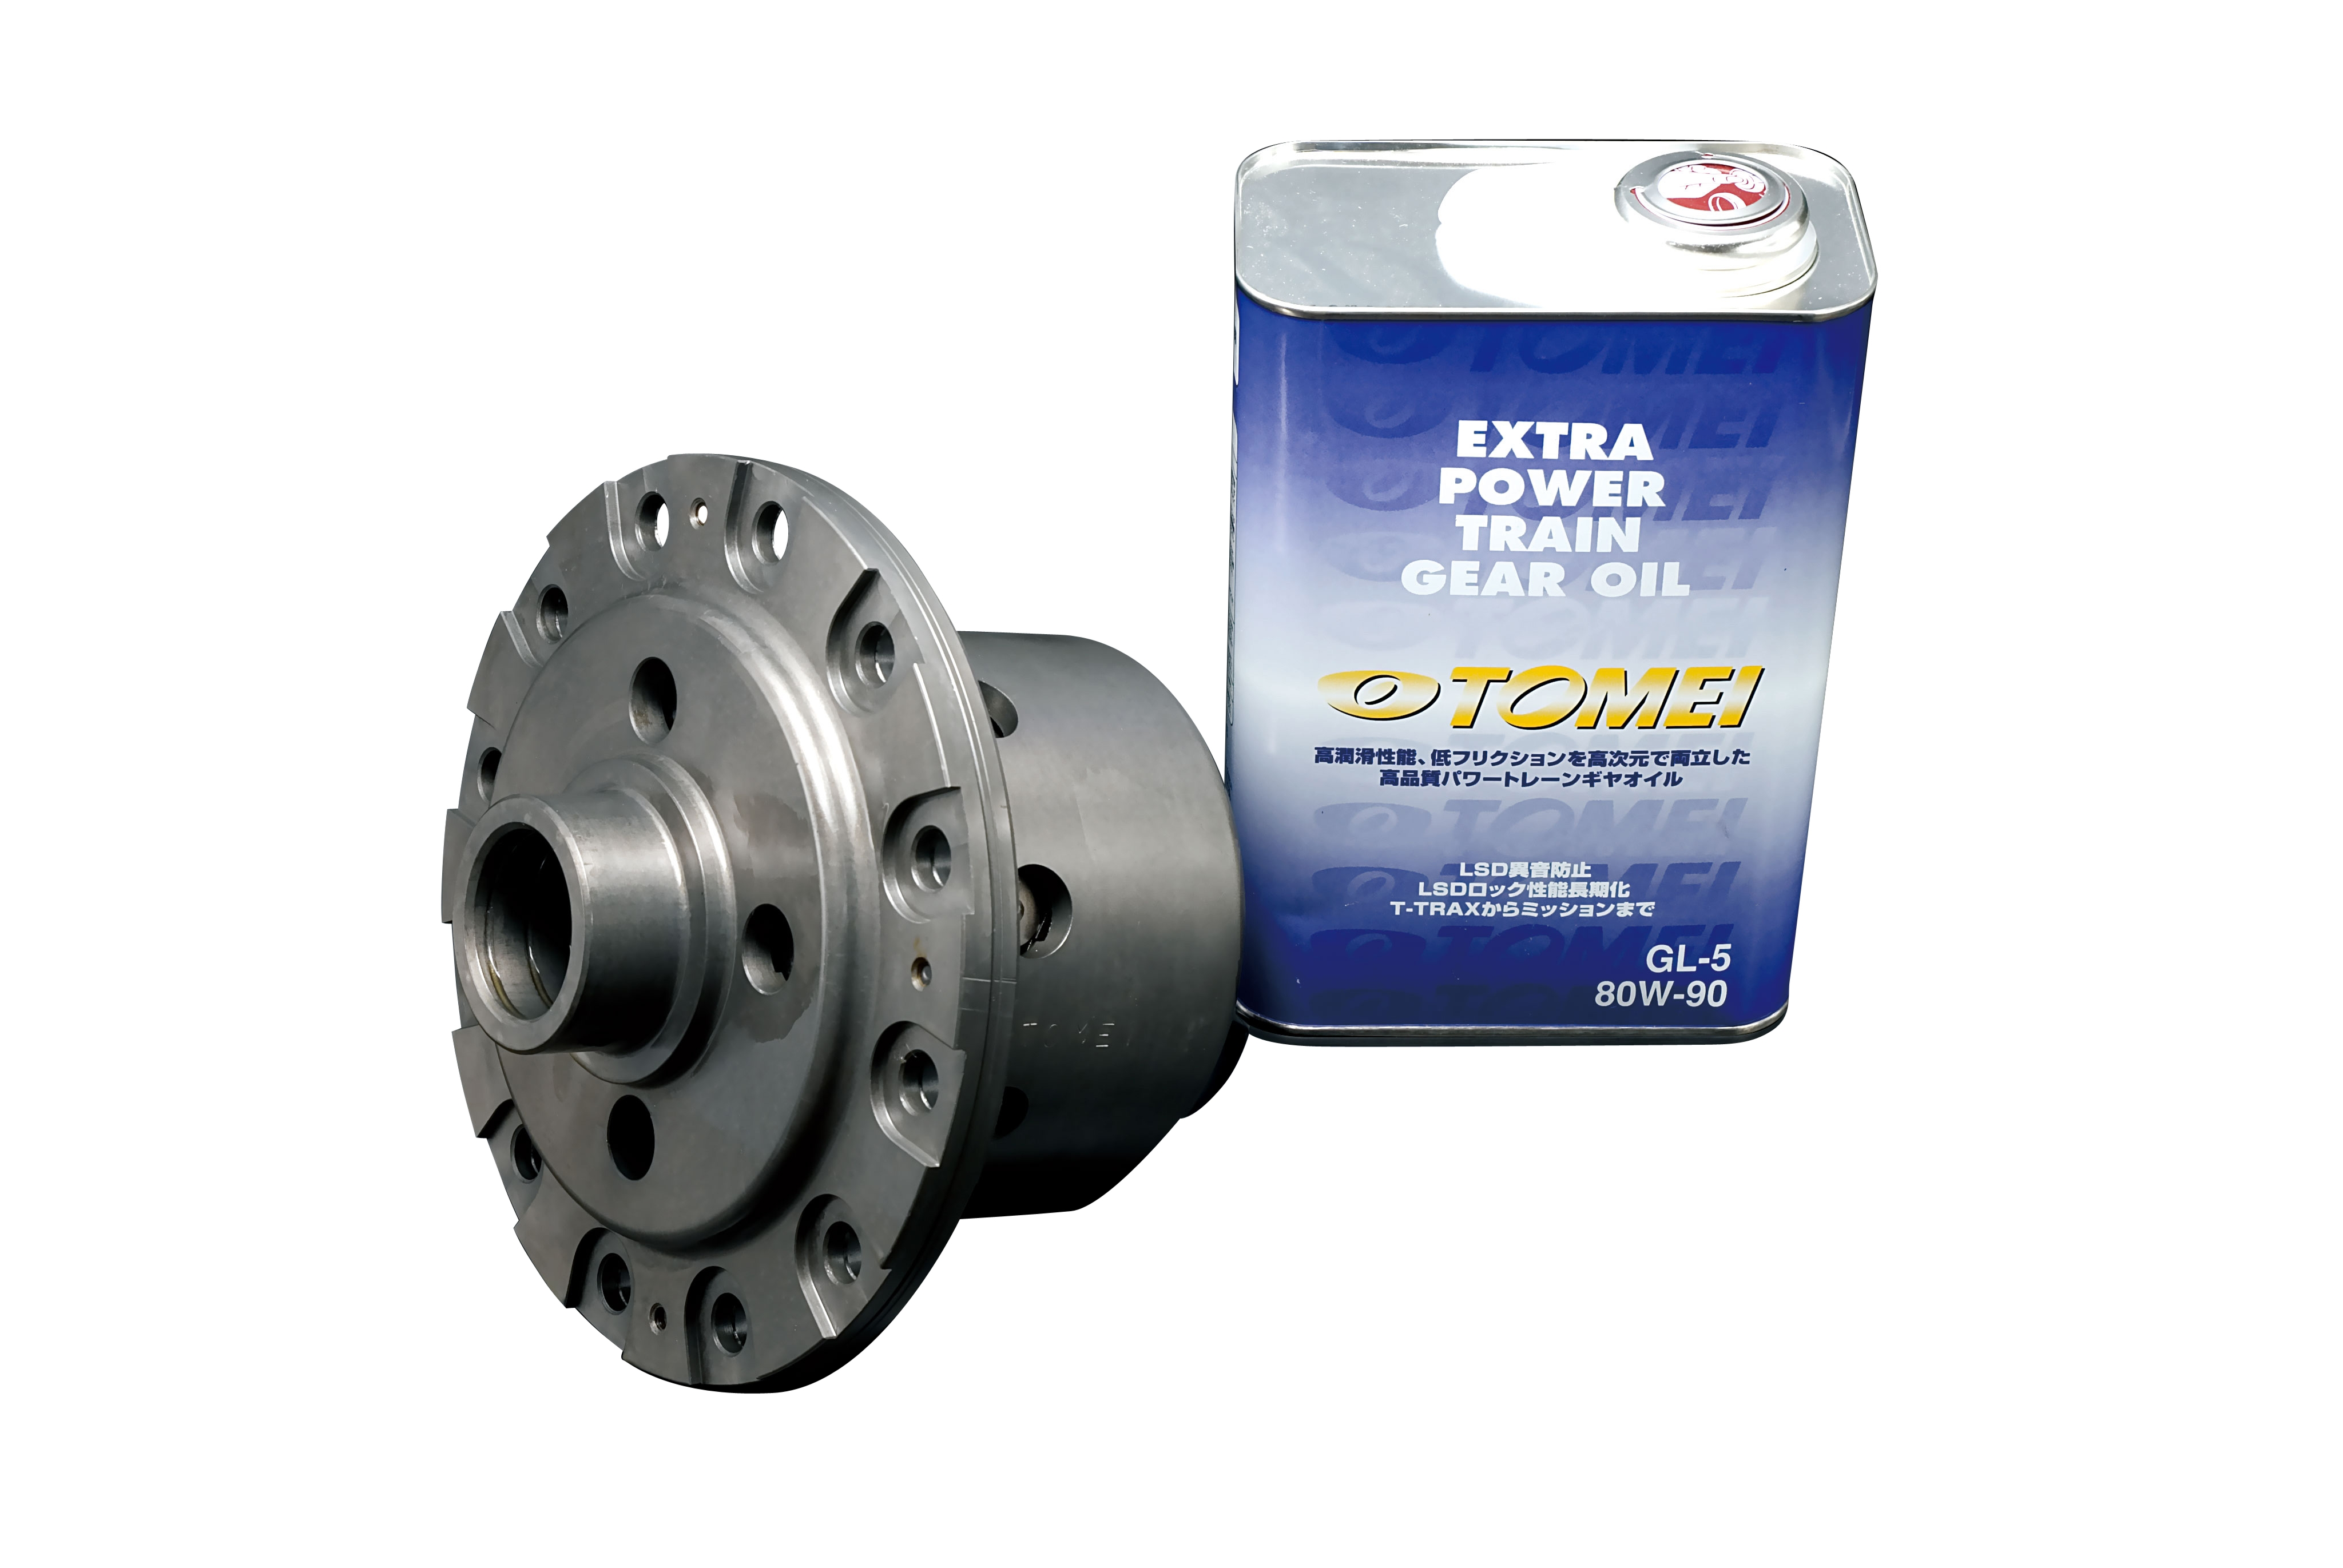 Tomei ZD1 1.5-Way LSD Kit Technical Trax Advance For Mazda RX-7 FC3S With Standard Viscous Differential